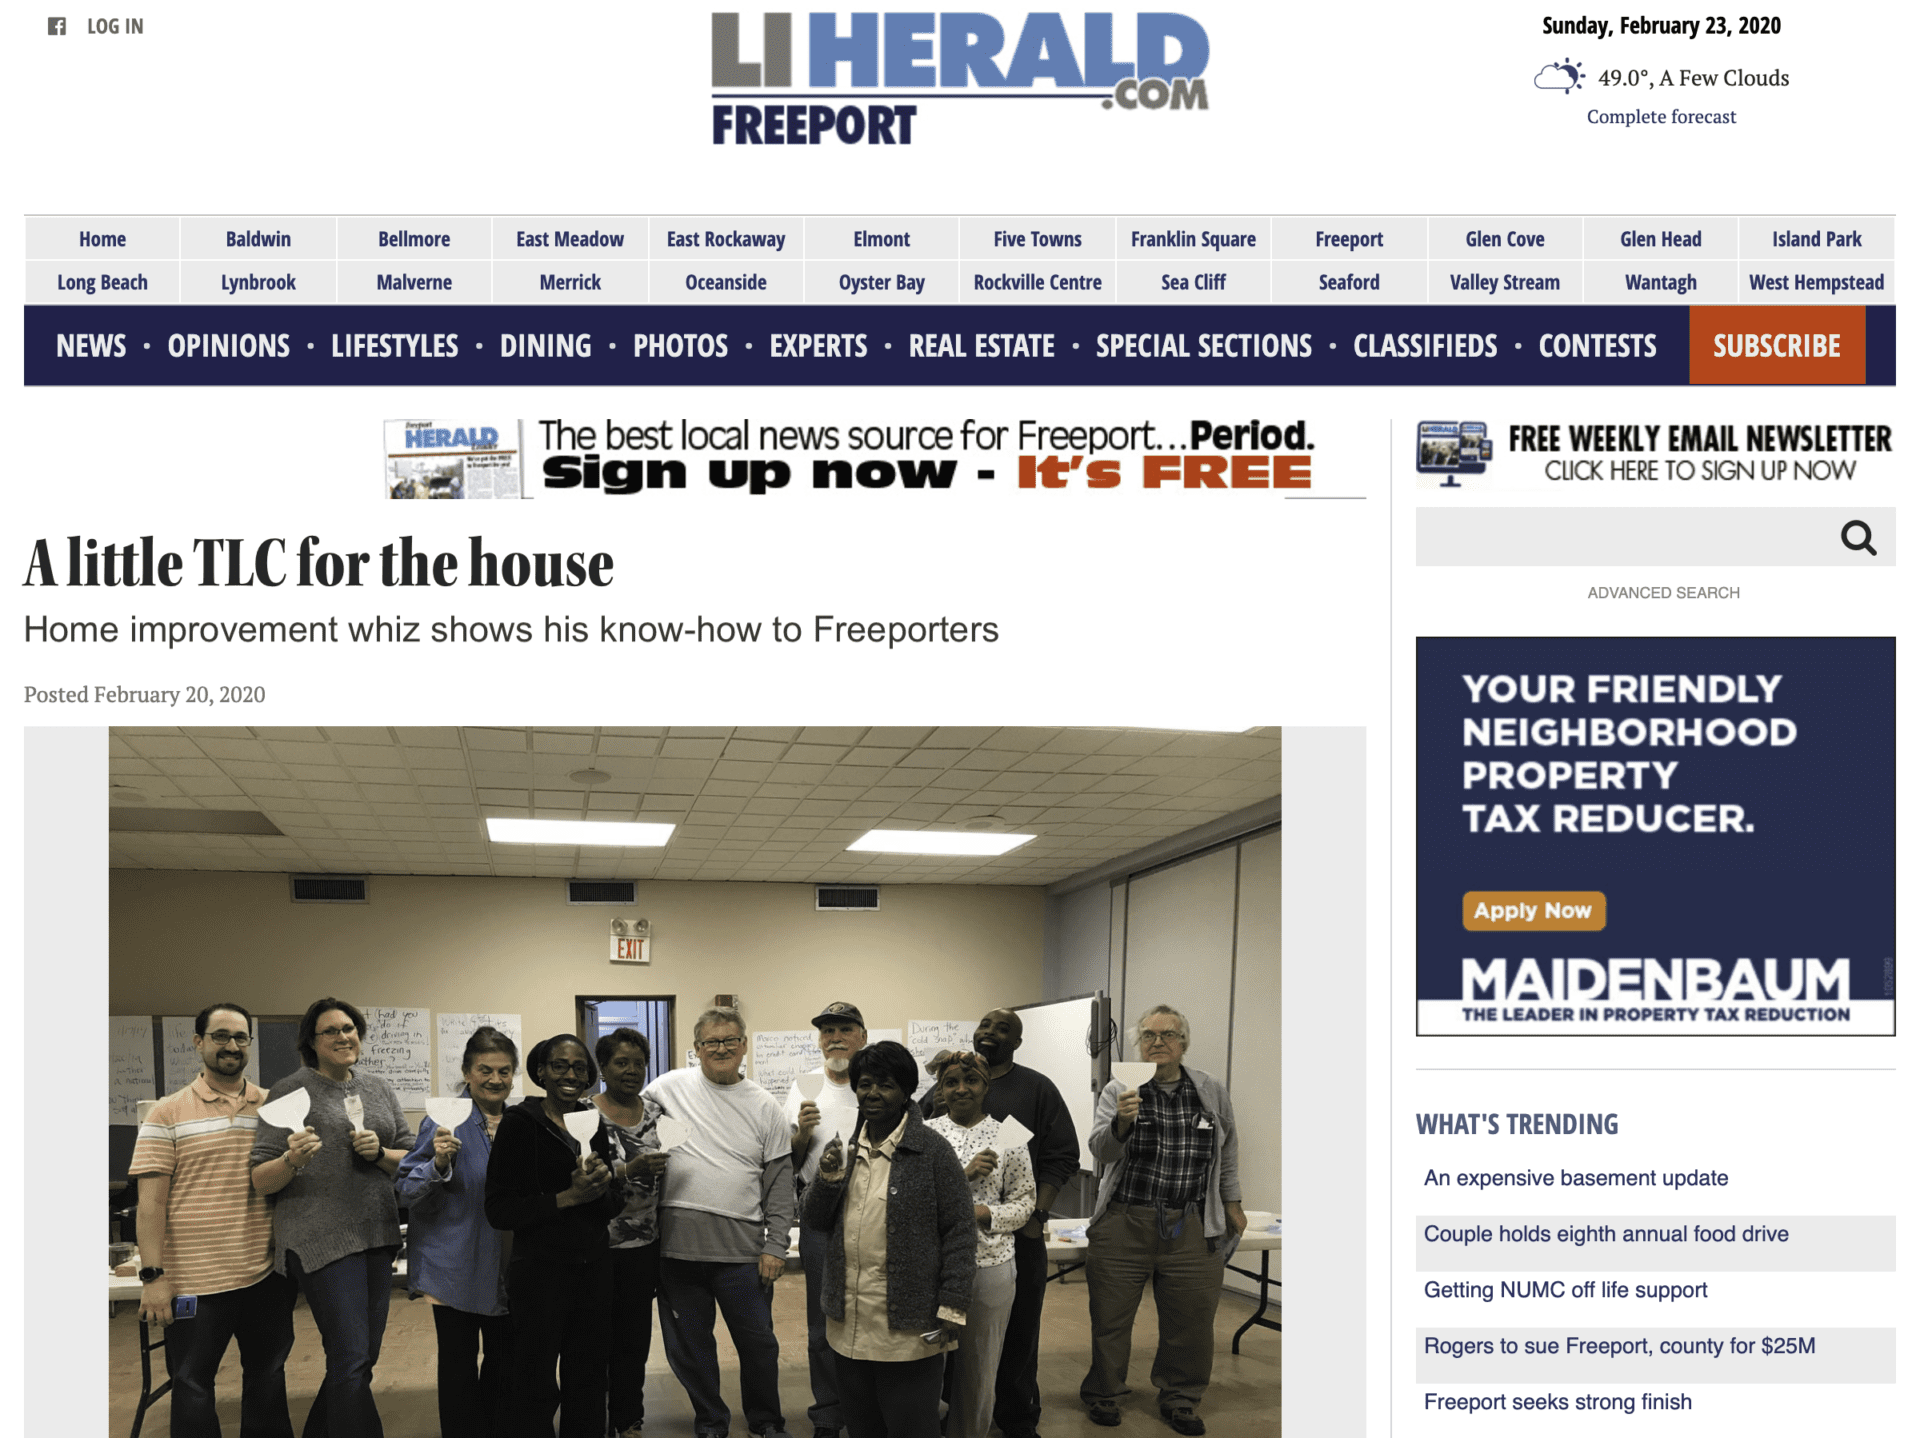 TLC for the house article published by the Long Island Herald Freeport